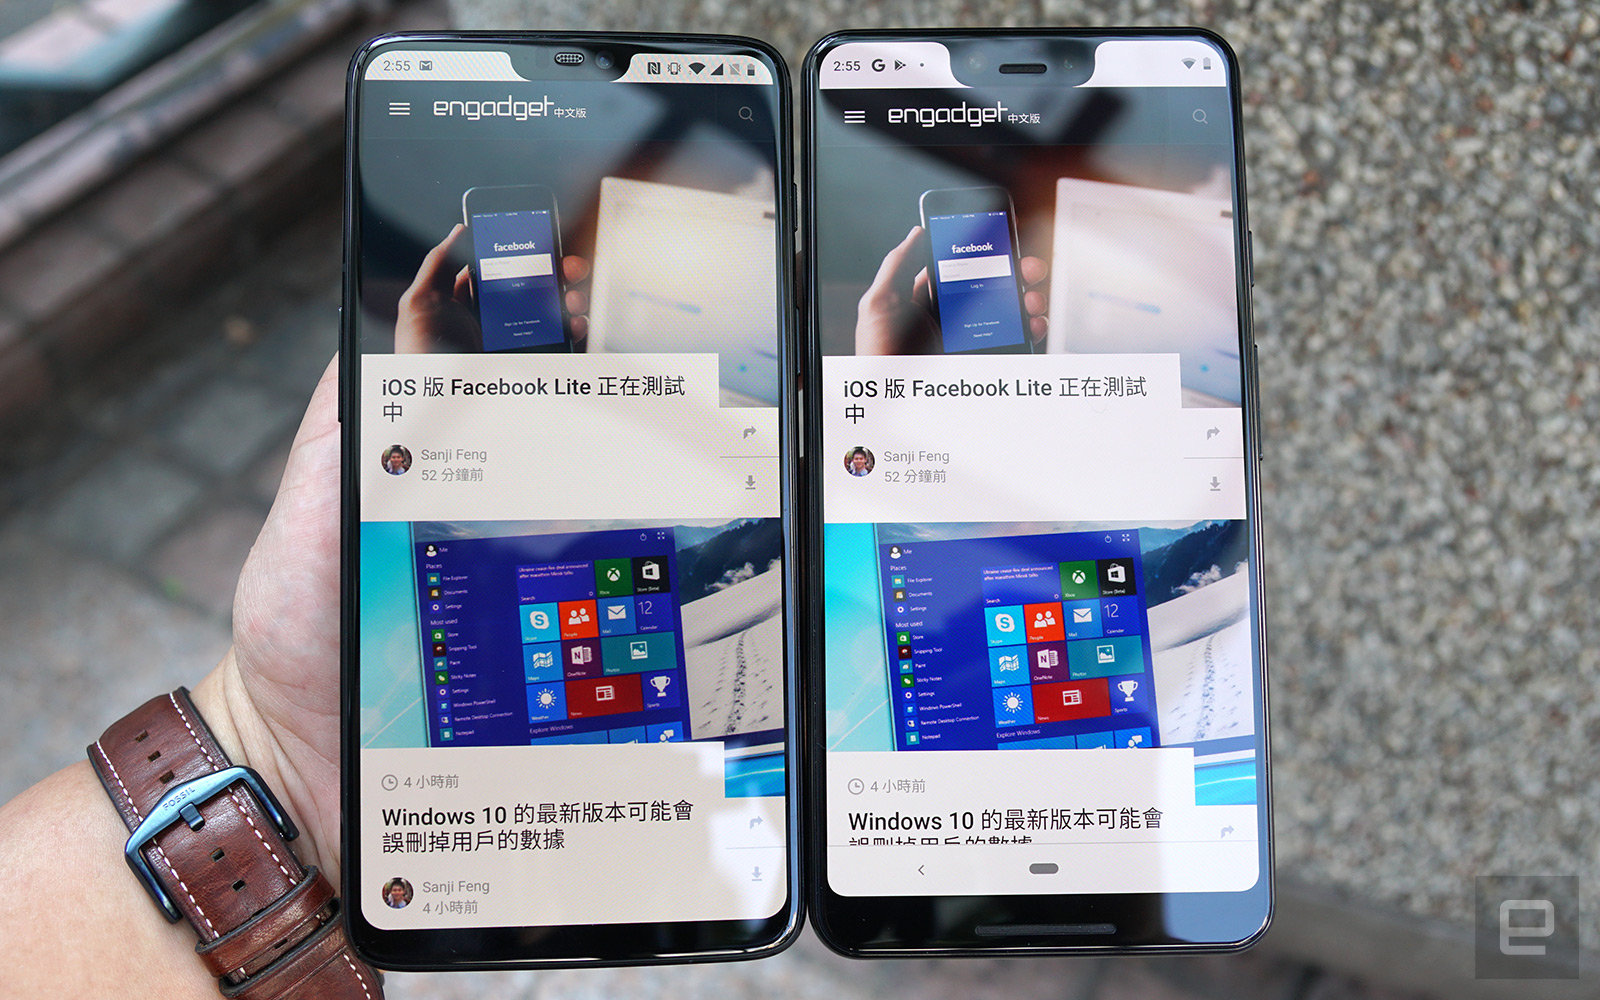 A OnePlus 6 next to the Google Pixel 3 XL.